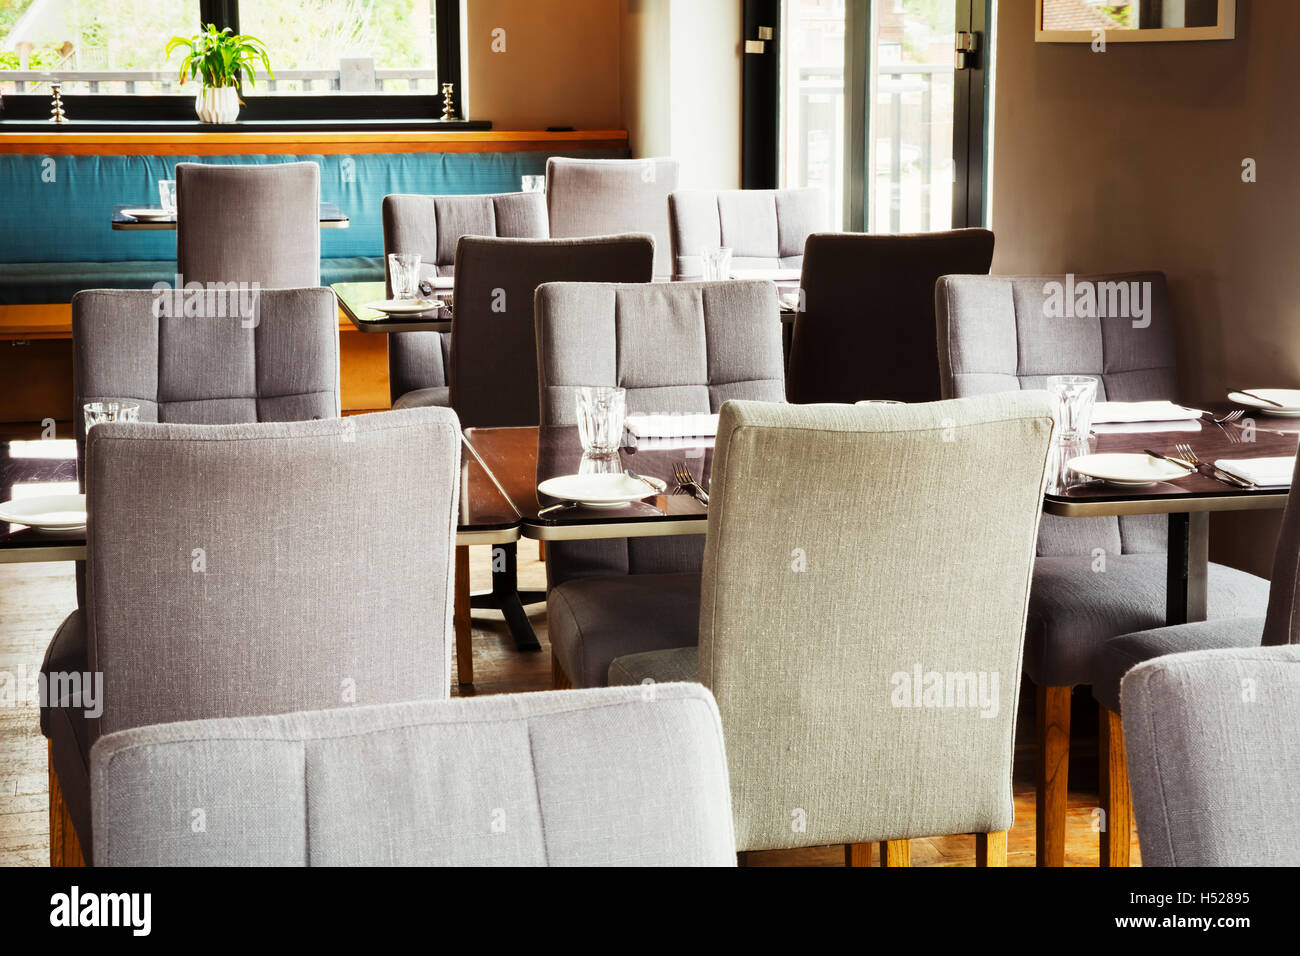 View of tables and grey upholstered chairs in a restaurant. - Stock Image